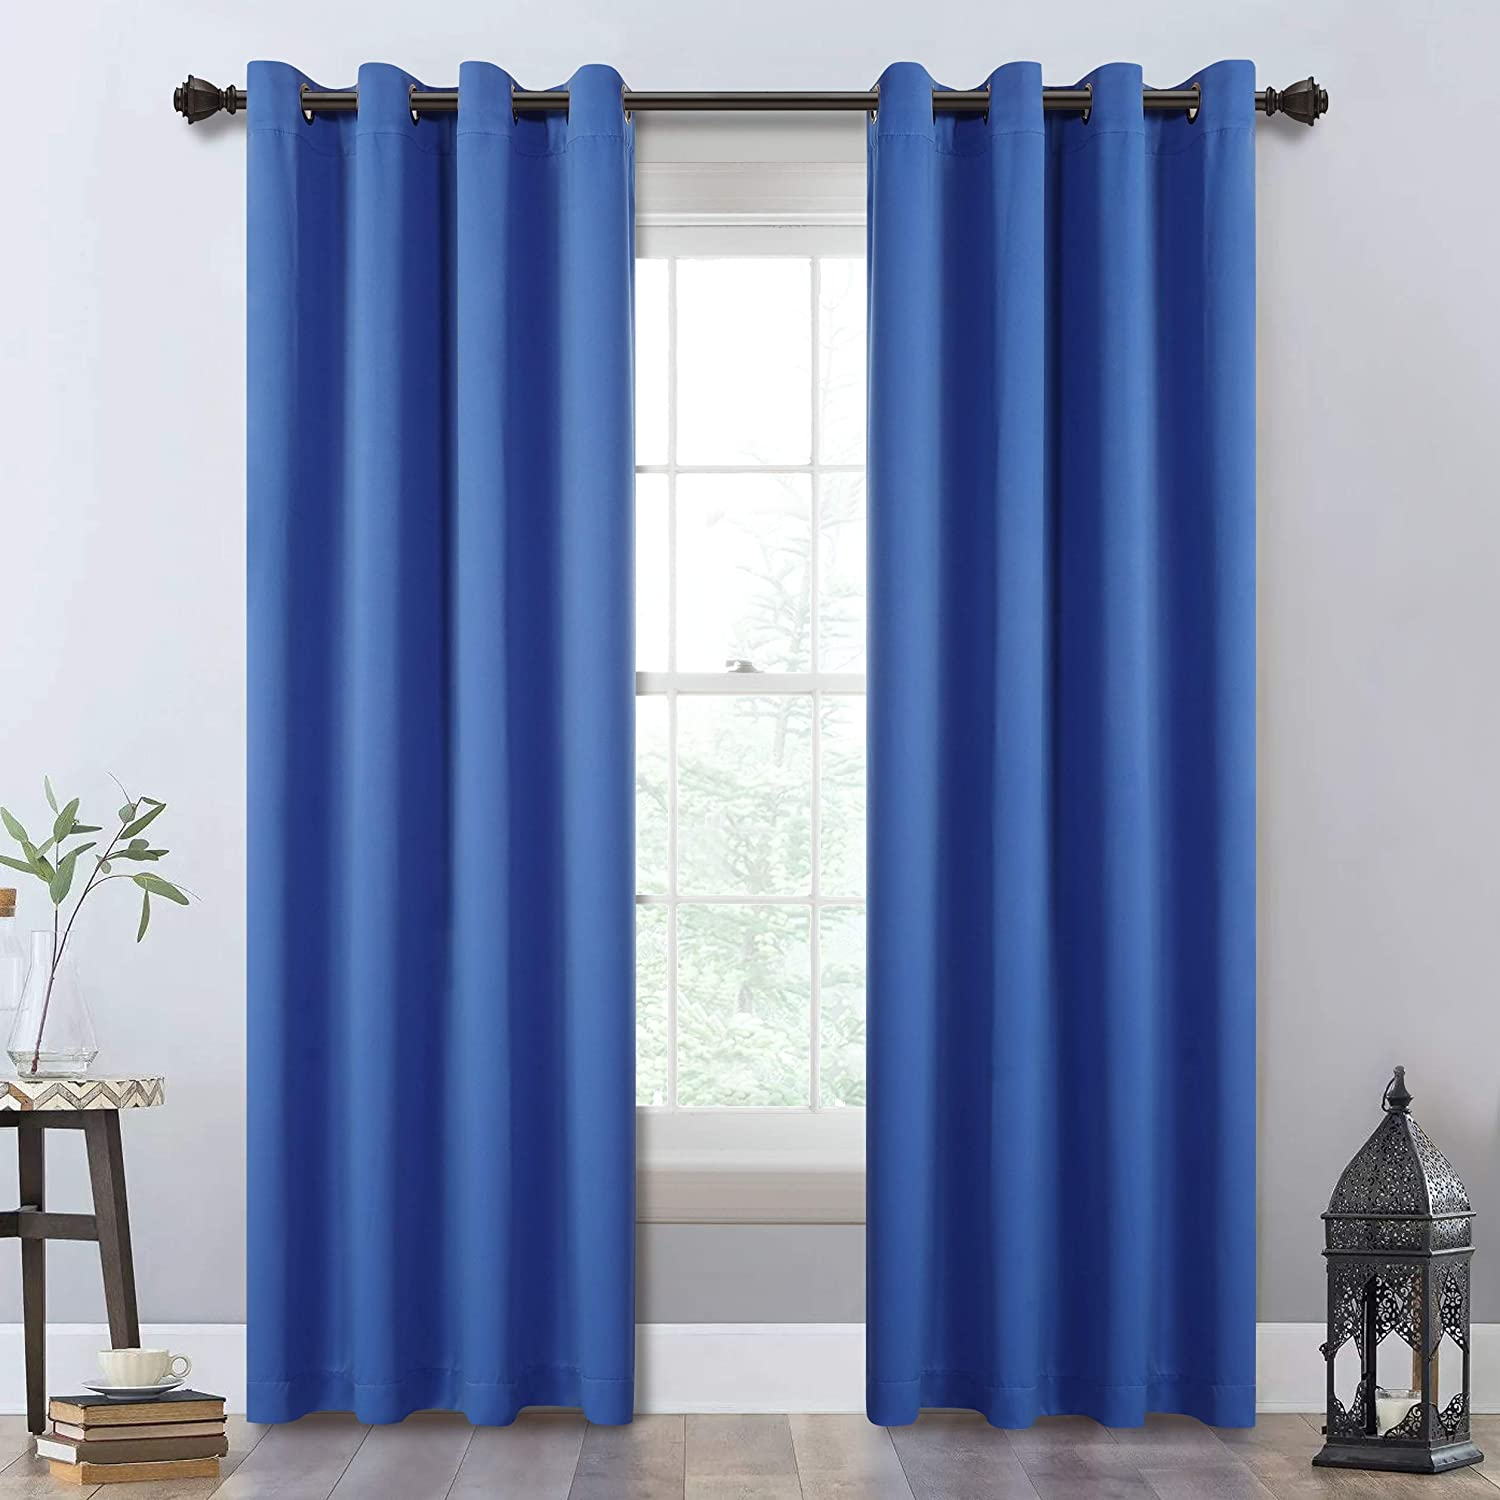 MYSKY HOME Royal Blue Curtains 84 Inches Long,Set of 2 Panels,Thermal Insulated Grommet Blackout Curtains,Light Blocking Room Darkening Curtains for Bedroom,Living Room,52